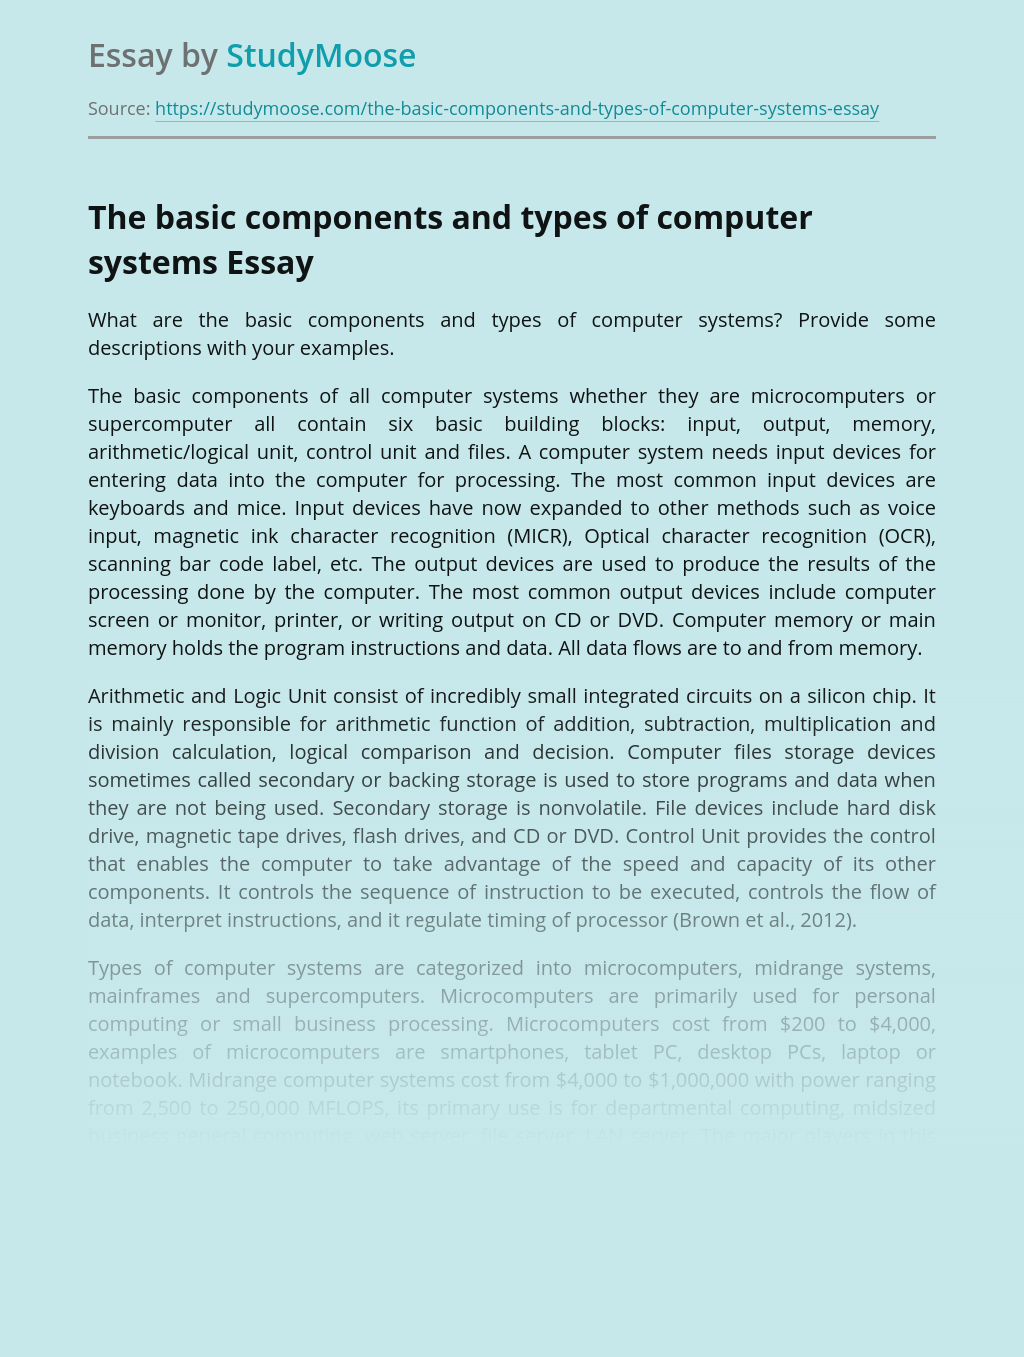 The basic components and types of computer systems